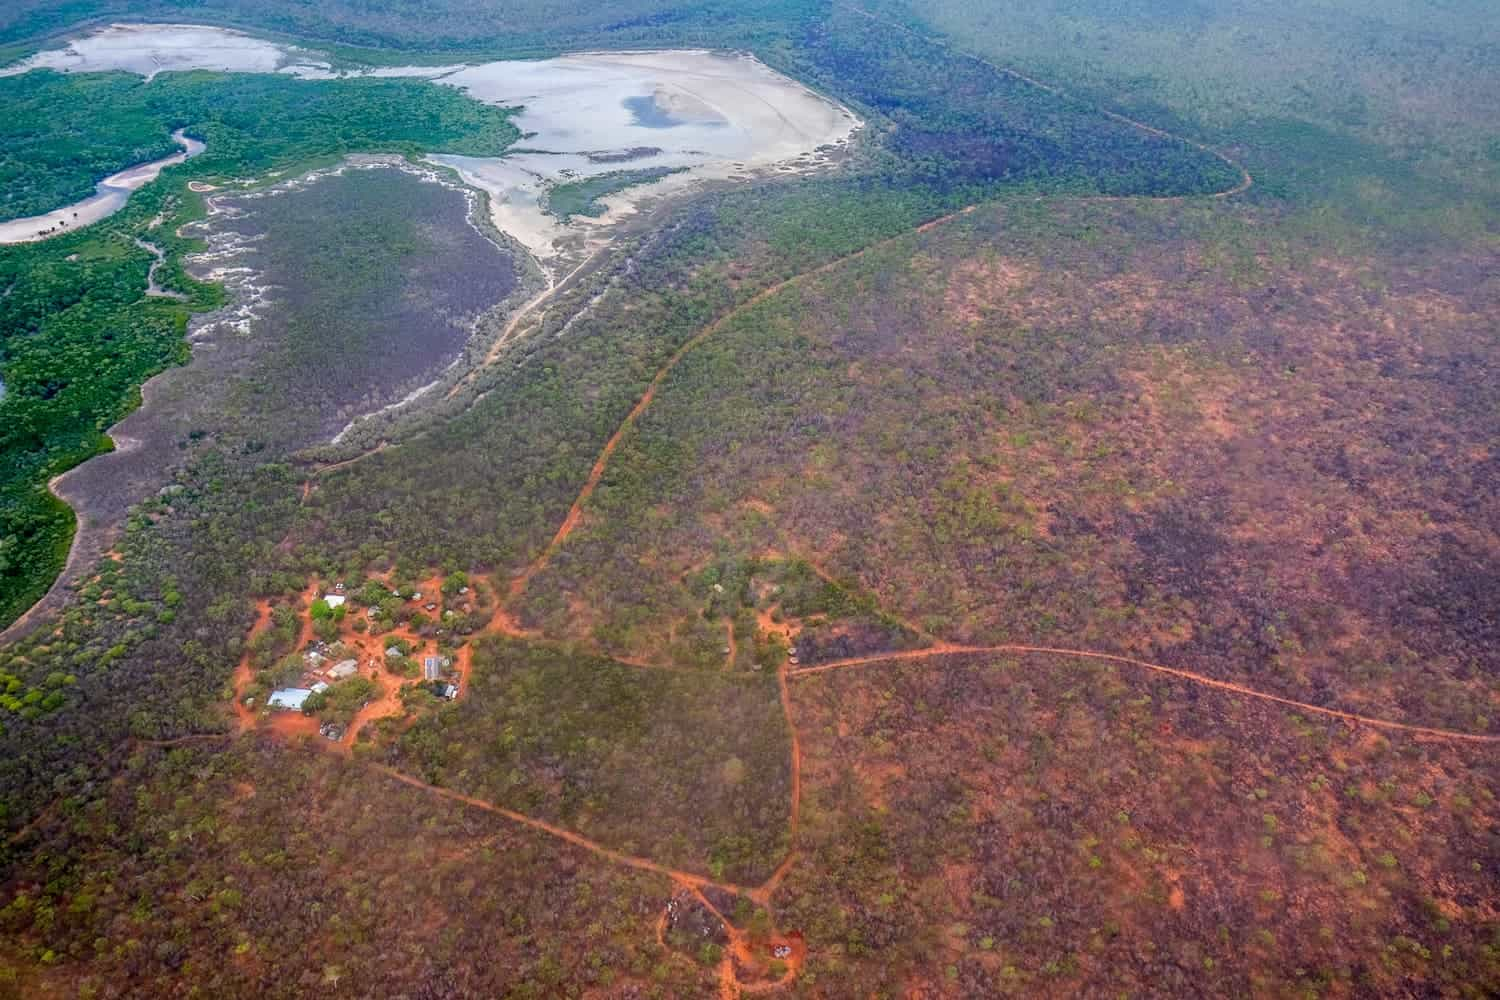 Aboriginal communities in Kimberly Outback of Western Australia